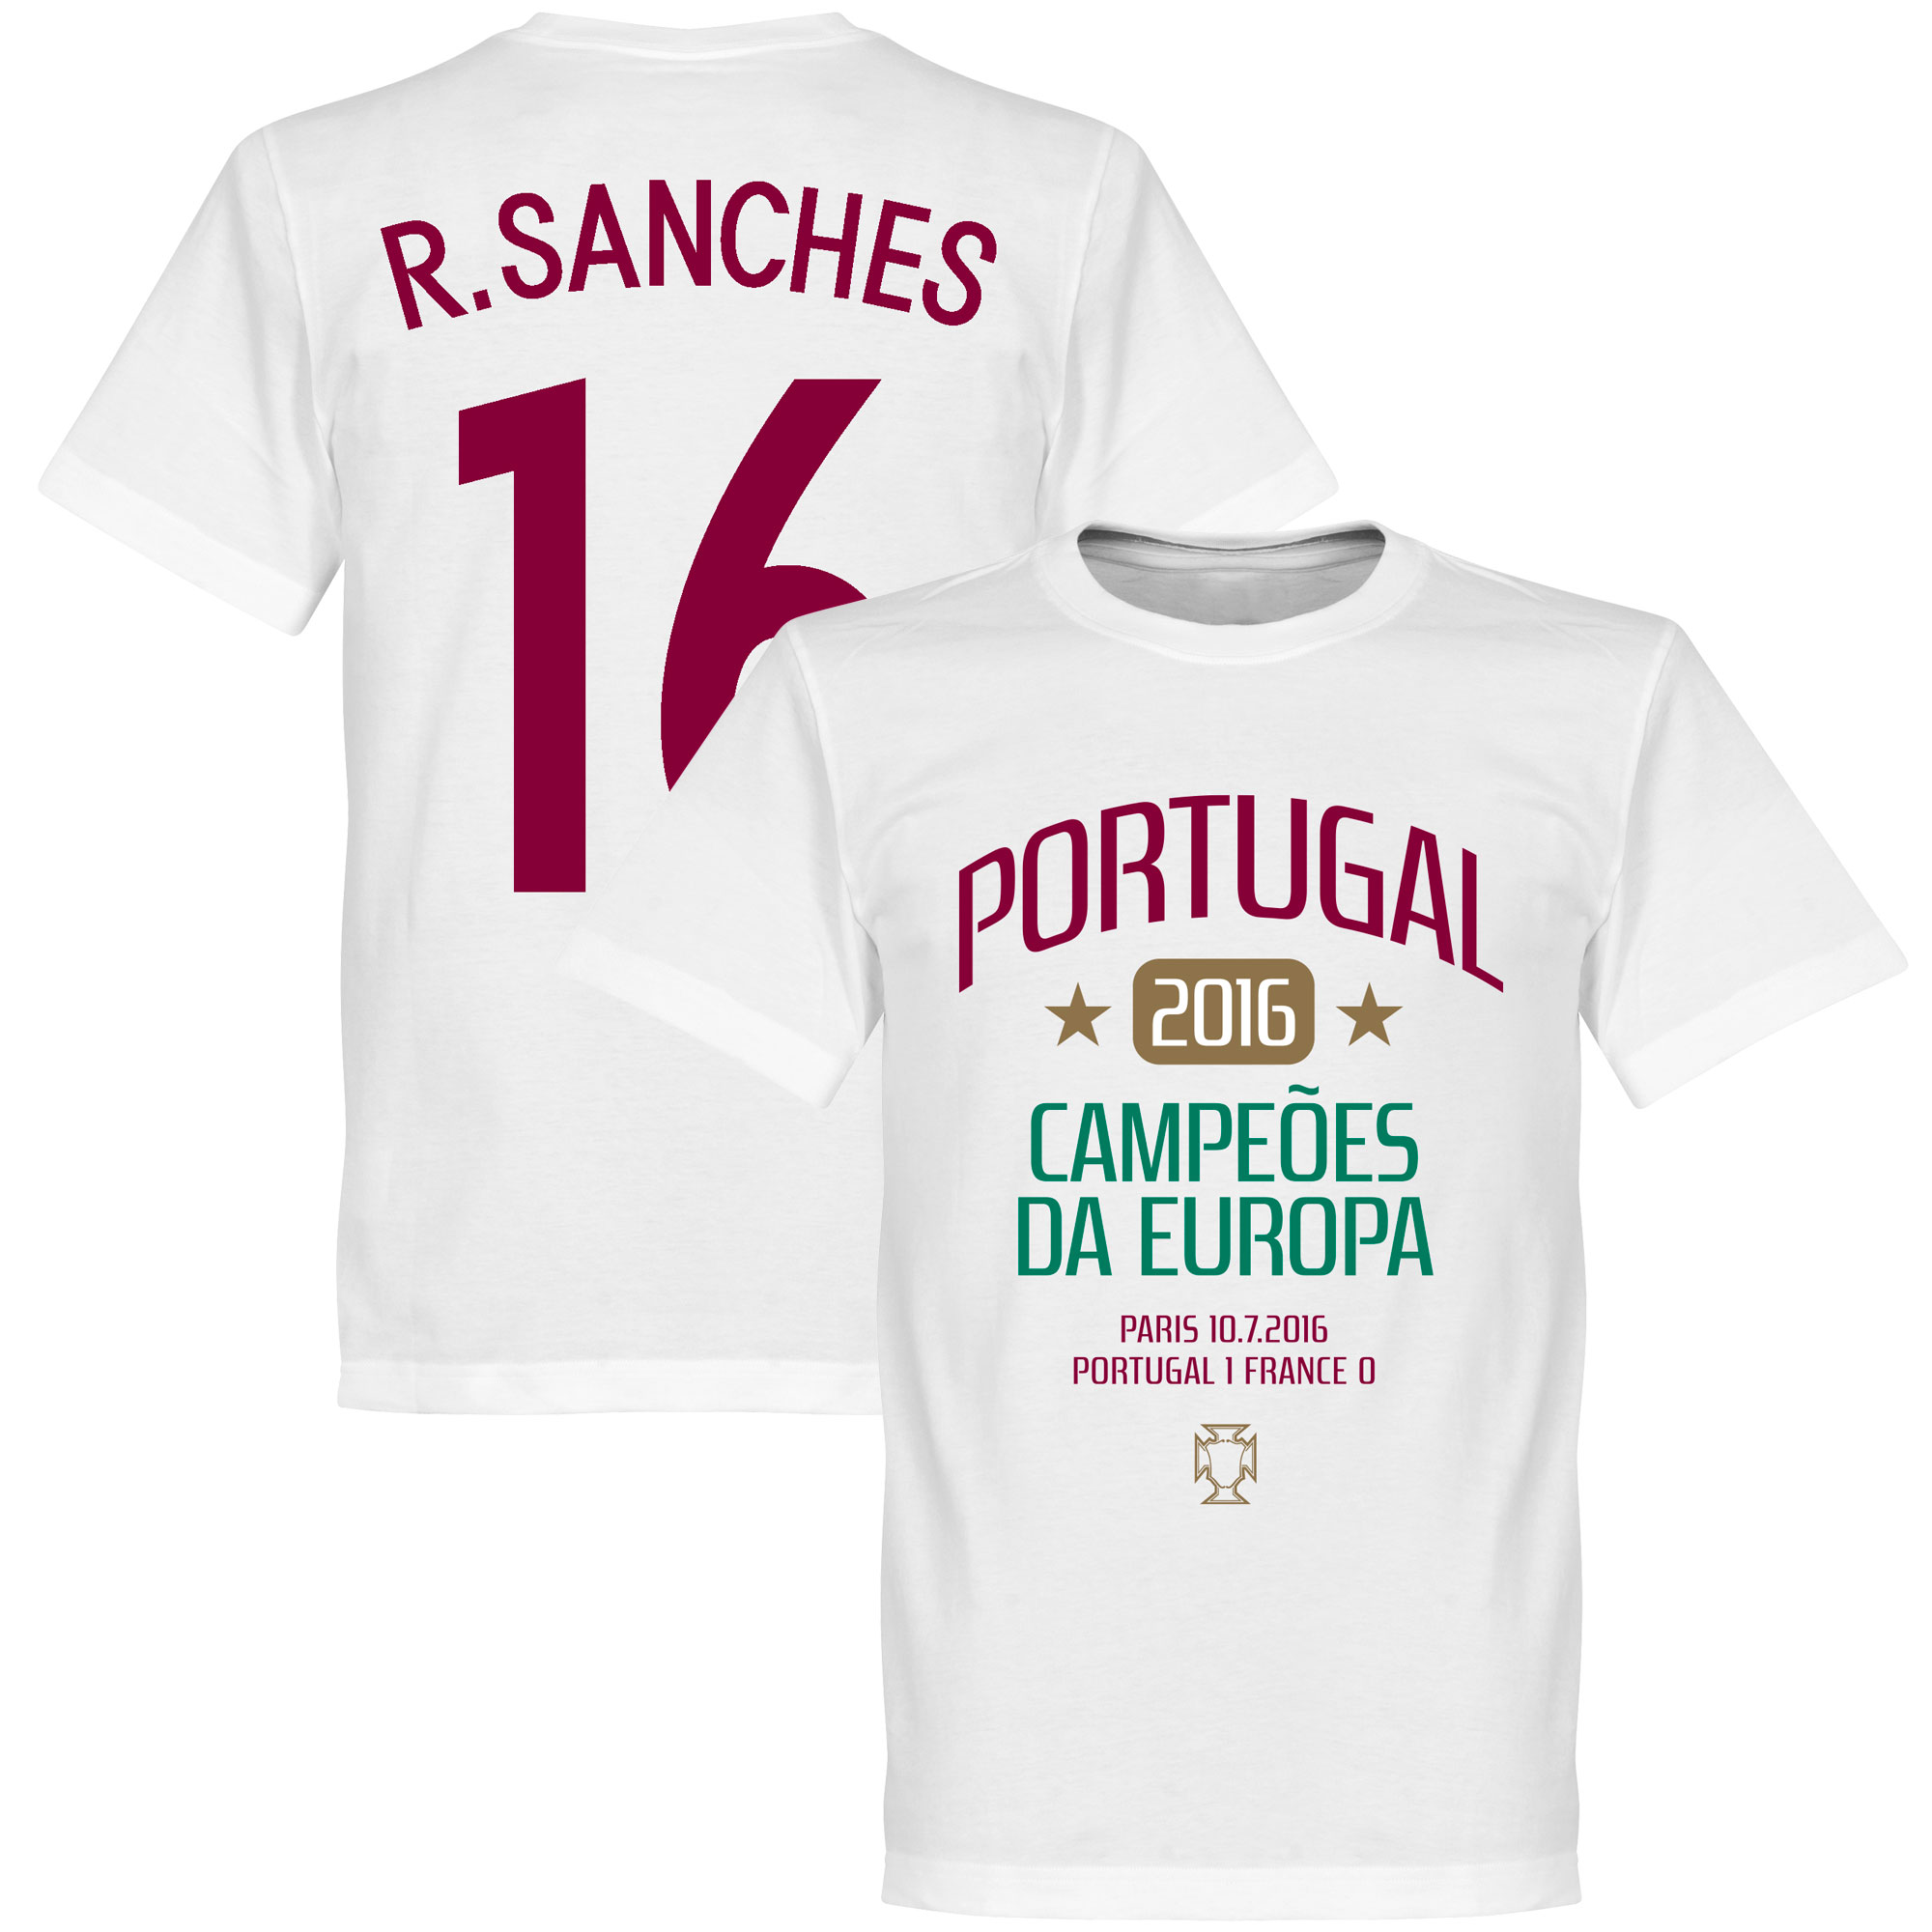 Portugal European Champions 2016 Sanches Tee - White - XXXL